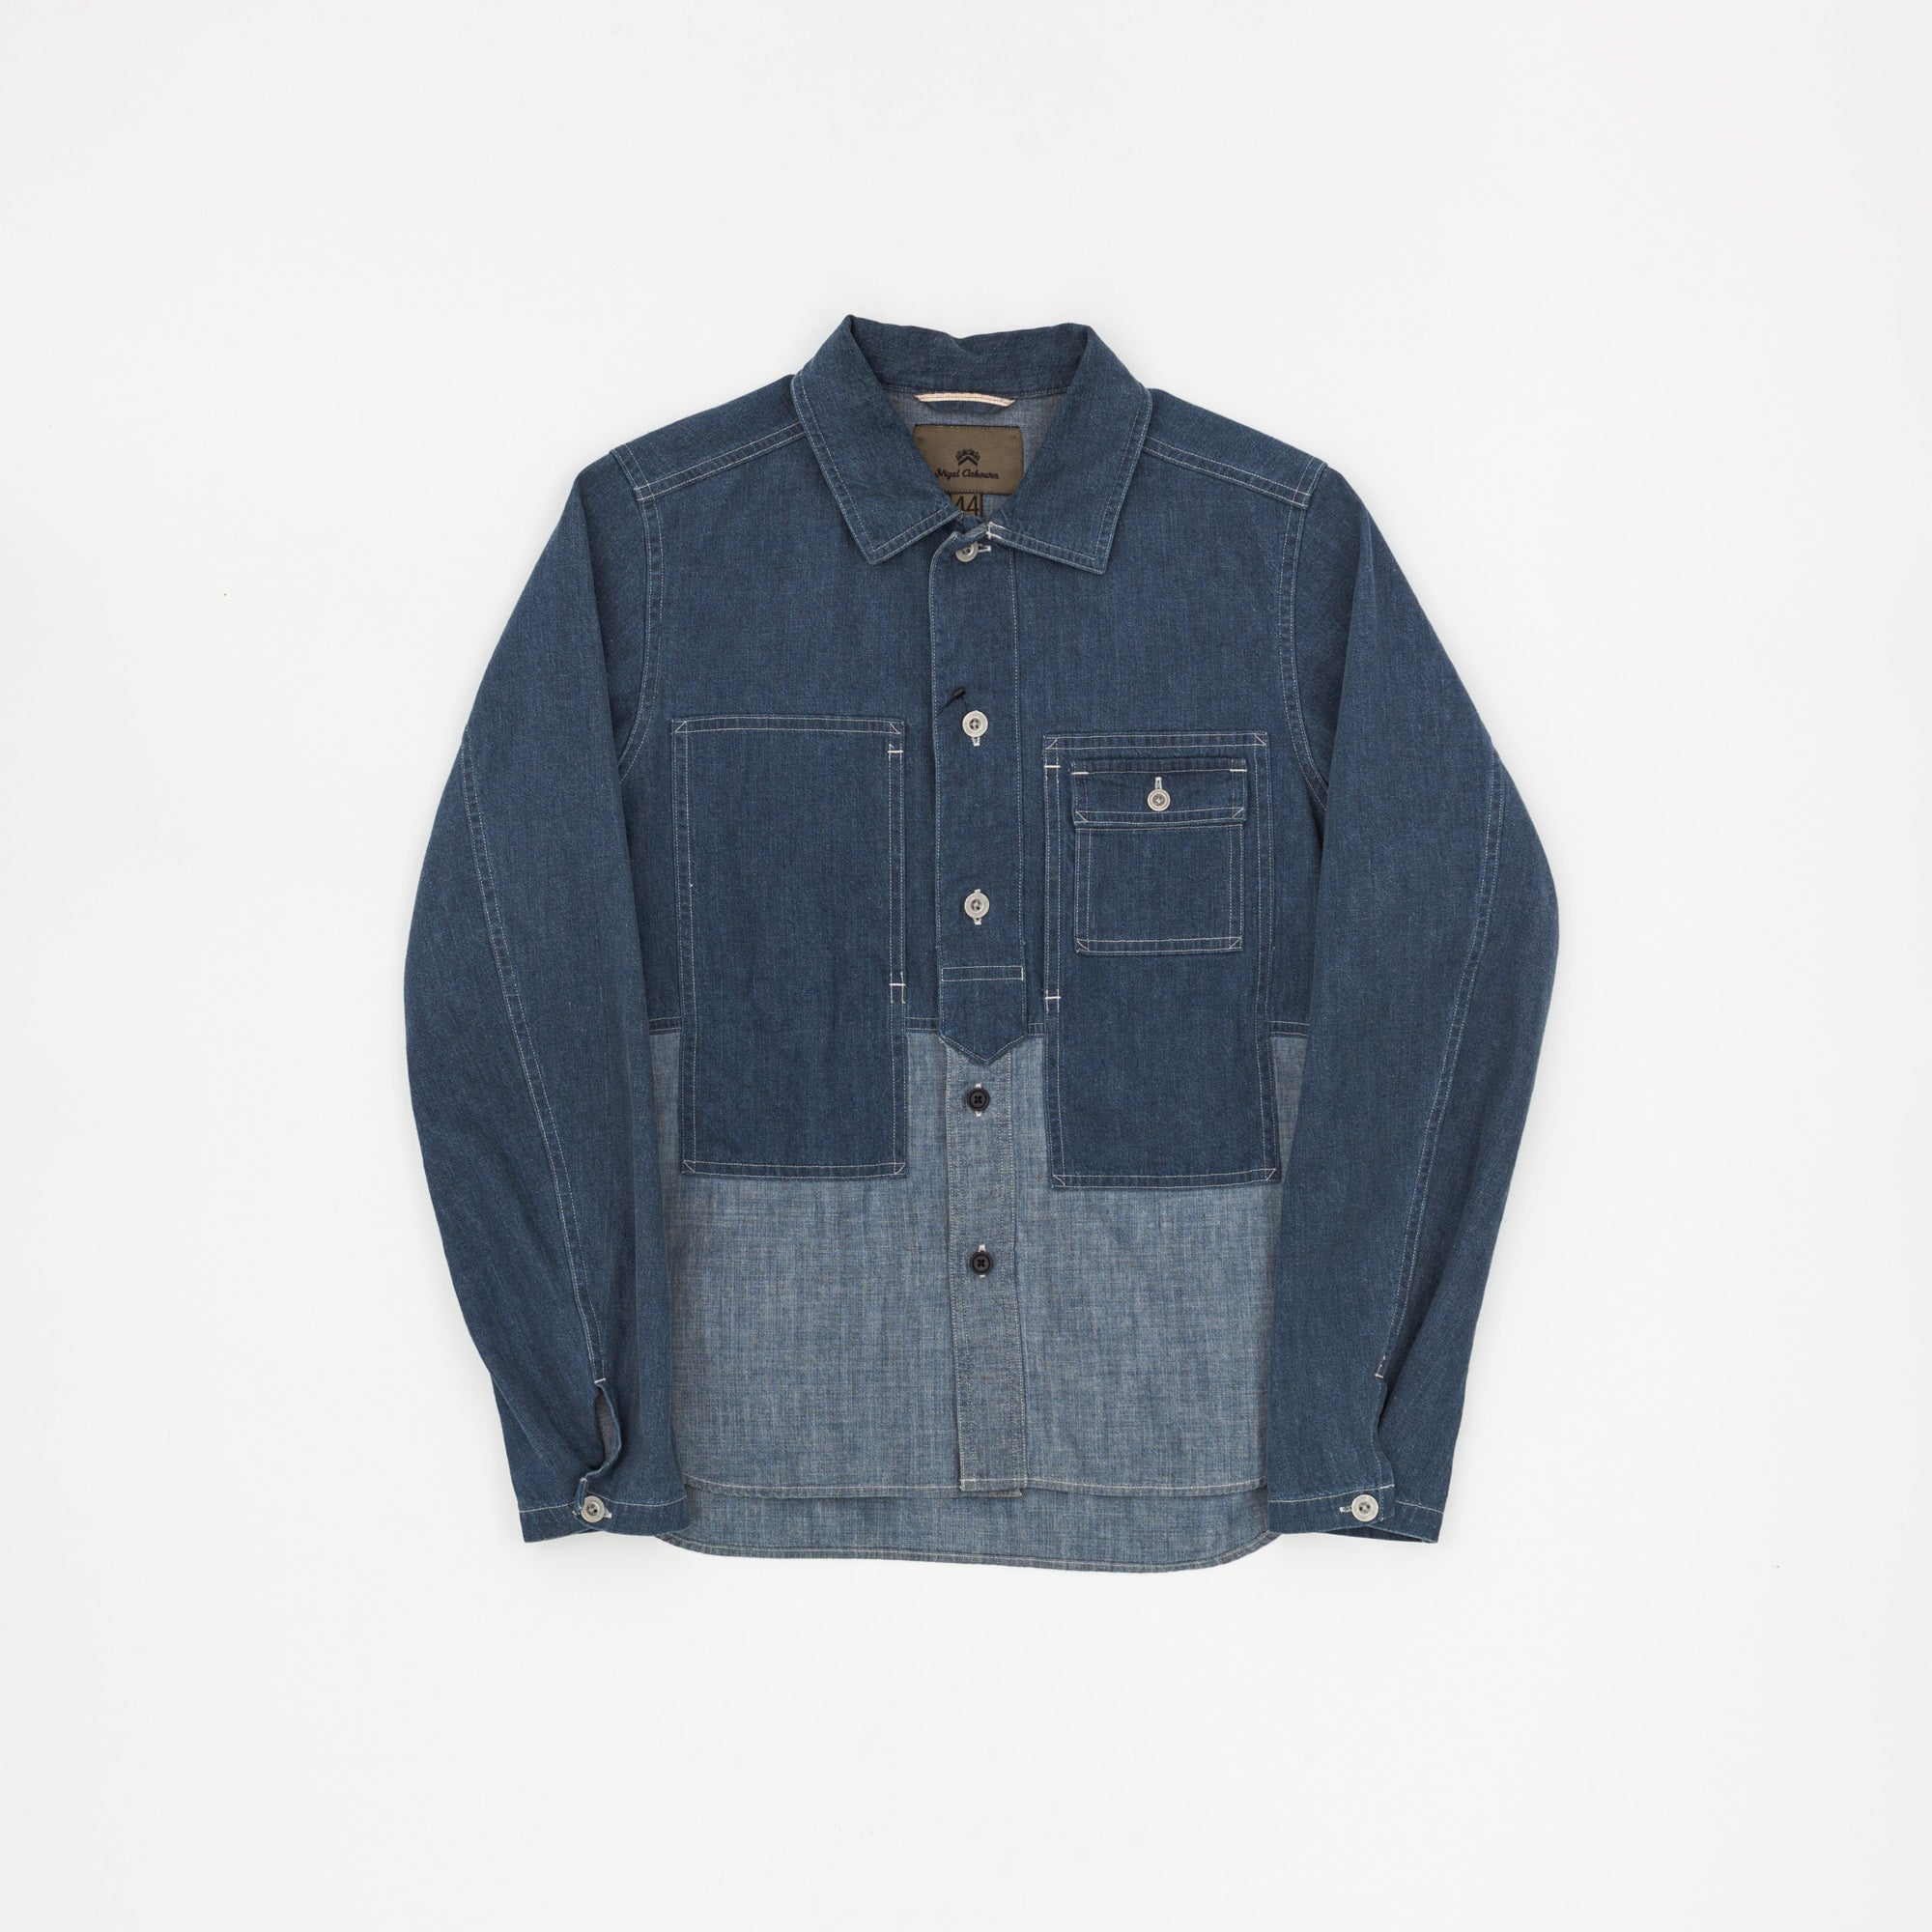 Nigel Cabourn Mainline 2 Tone Shirt Jacket